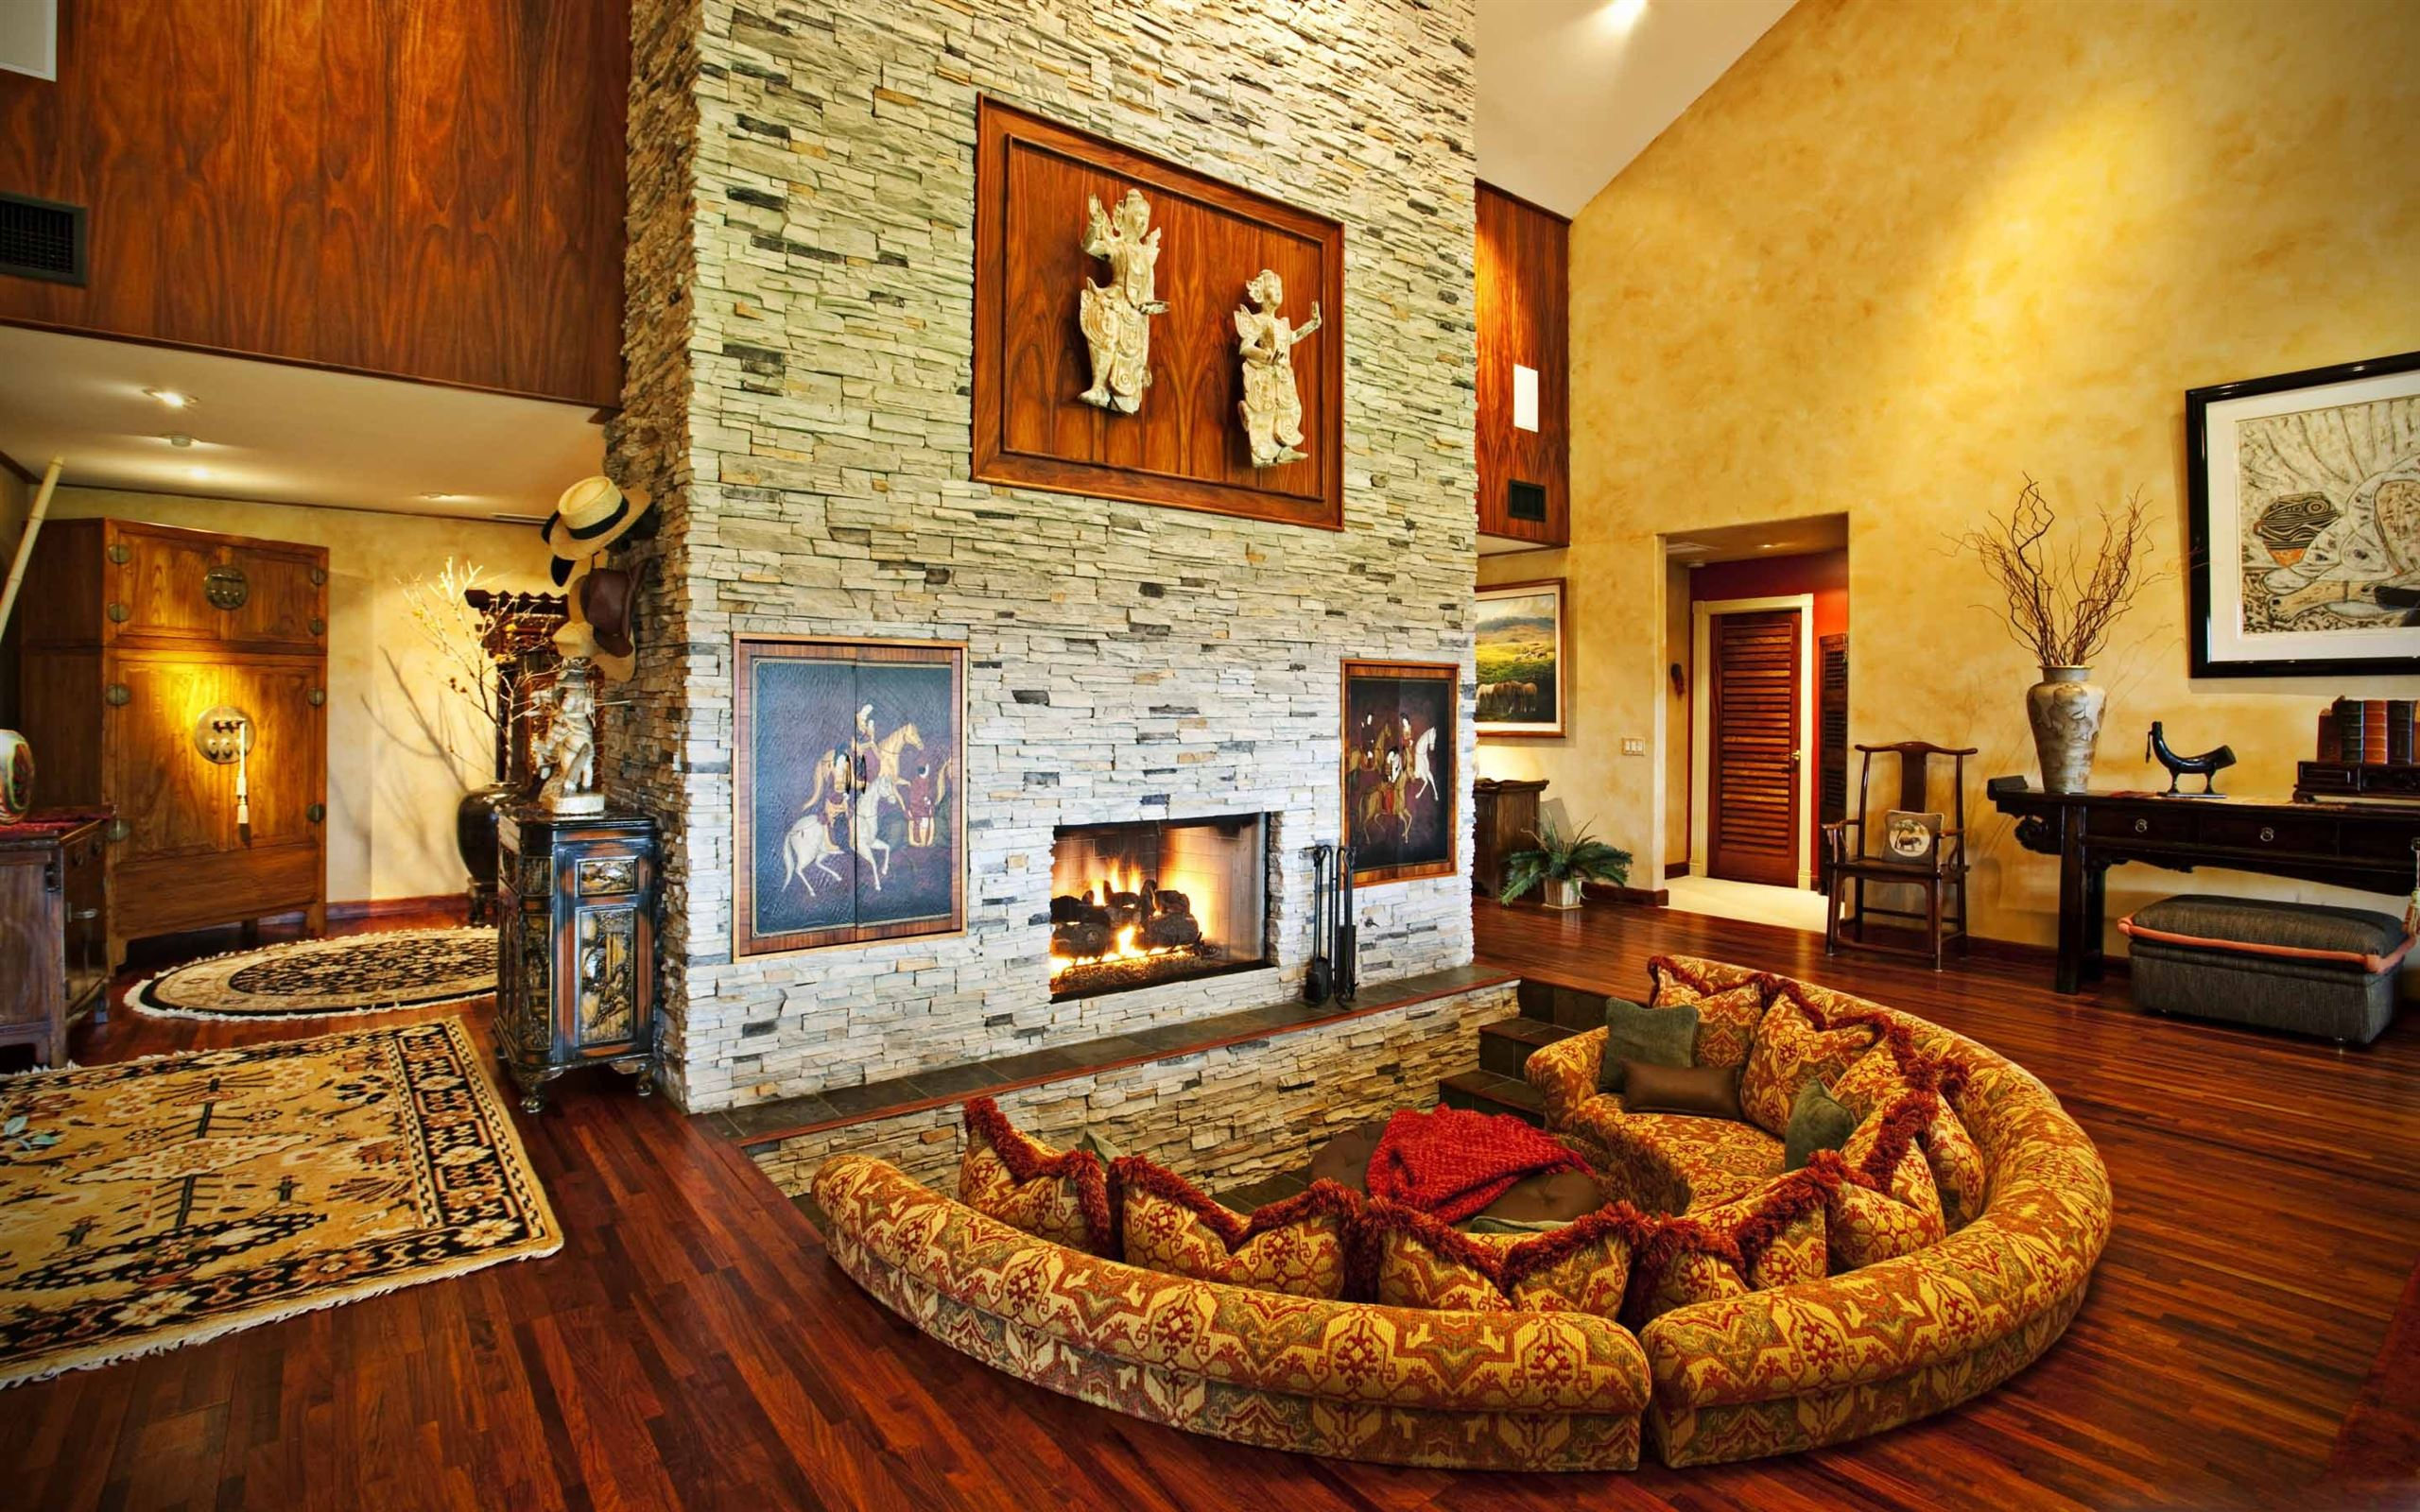 Room With Fireplace Mac Wallpaper Download Allmacwallpaper